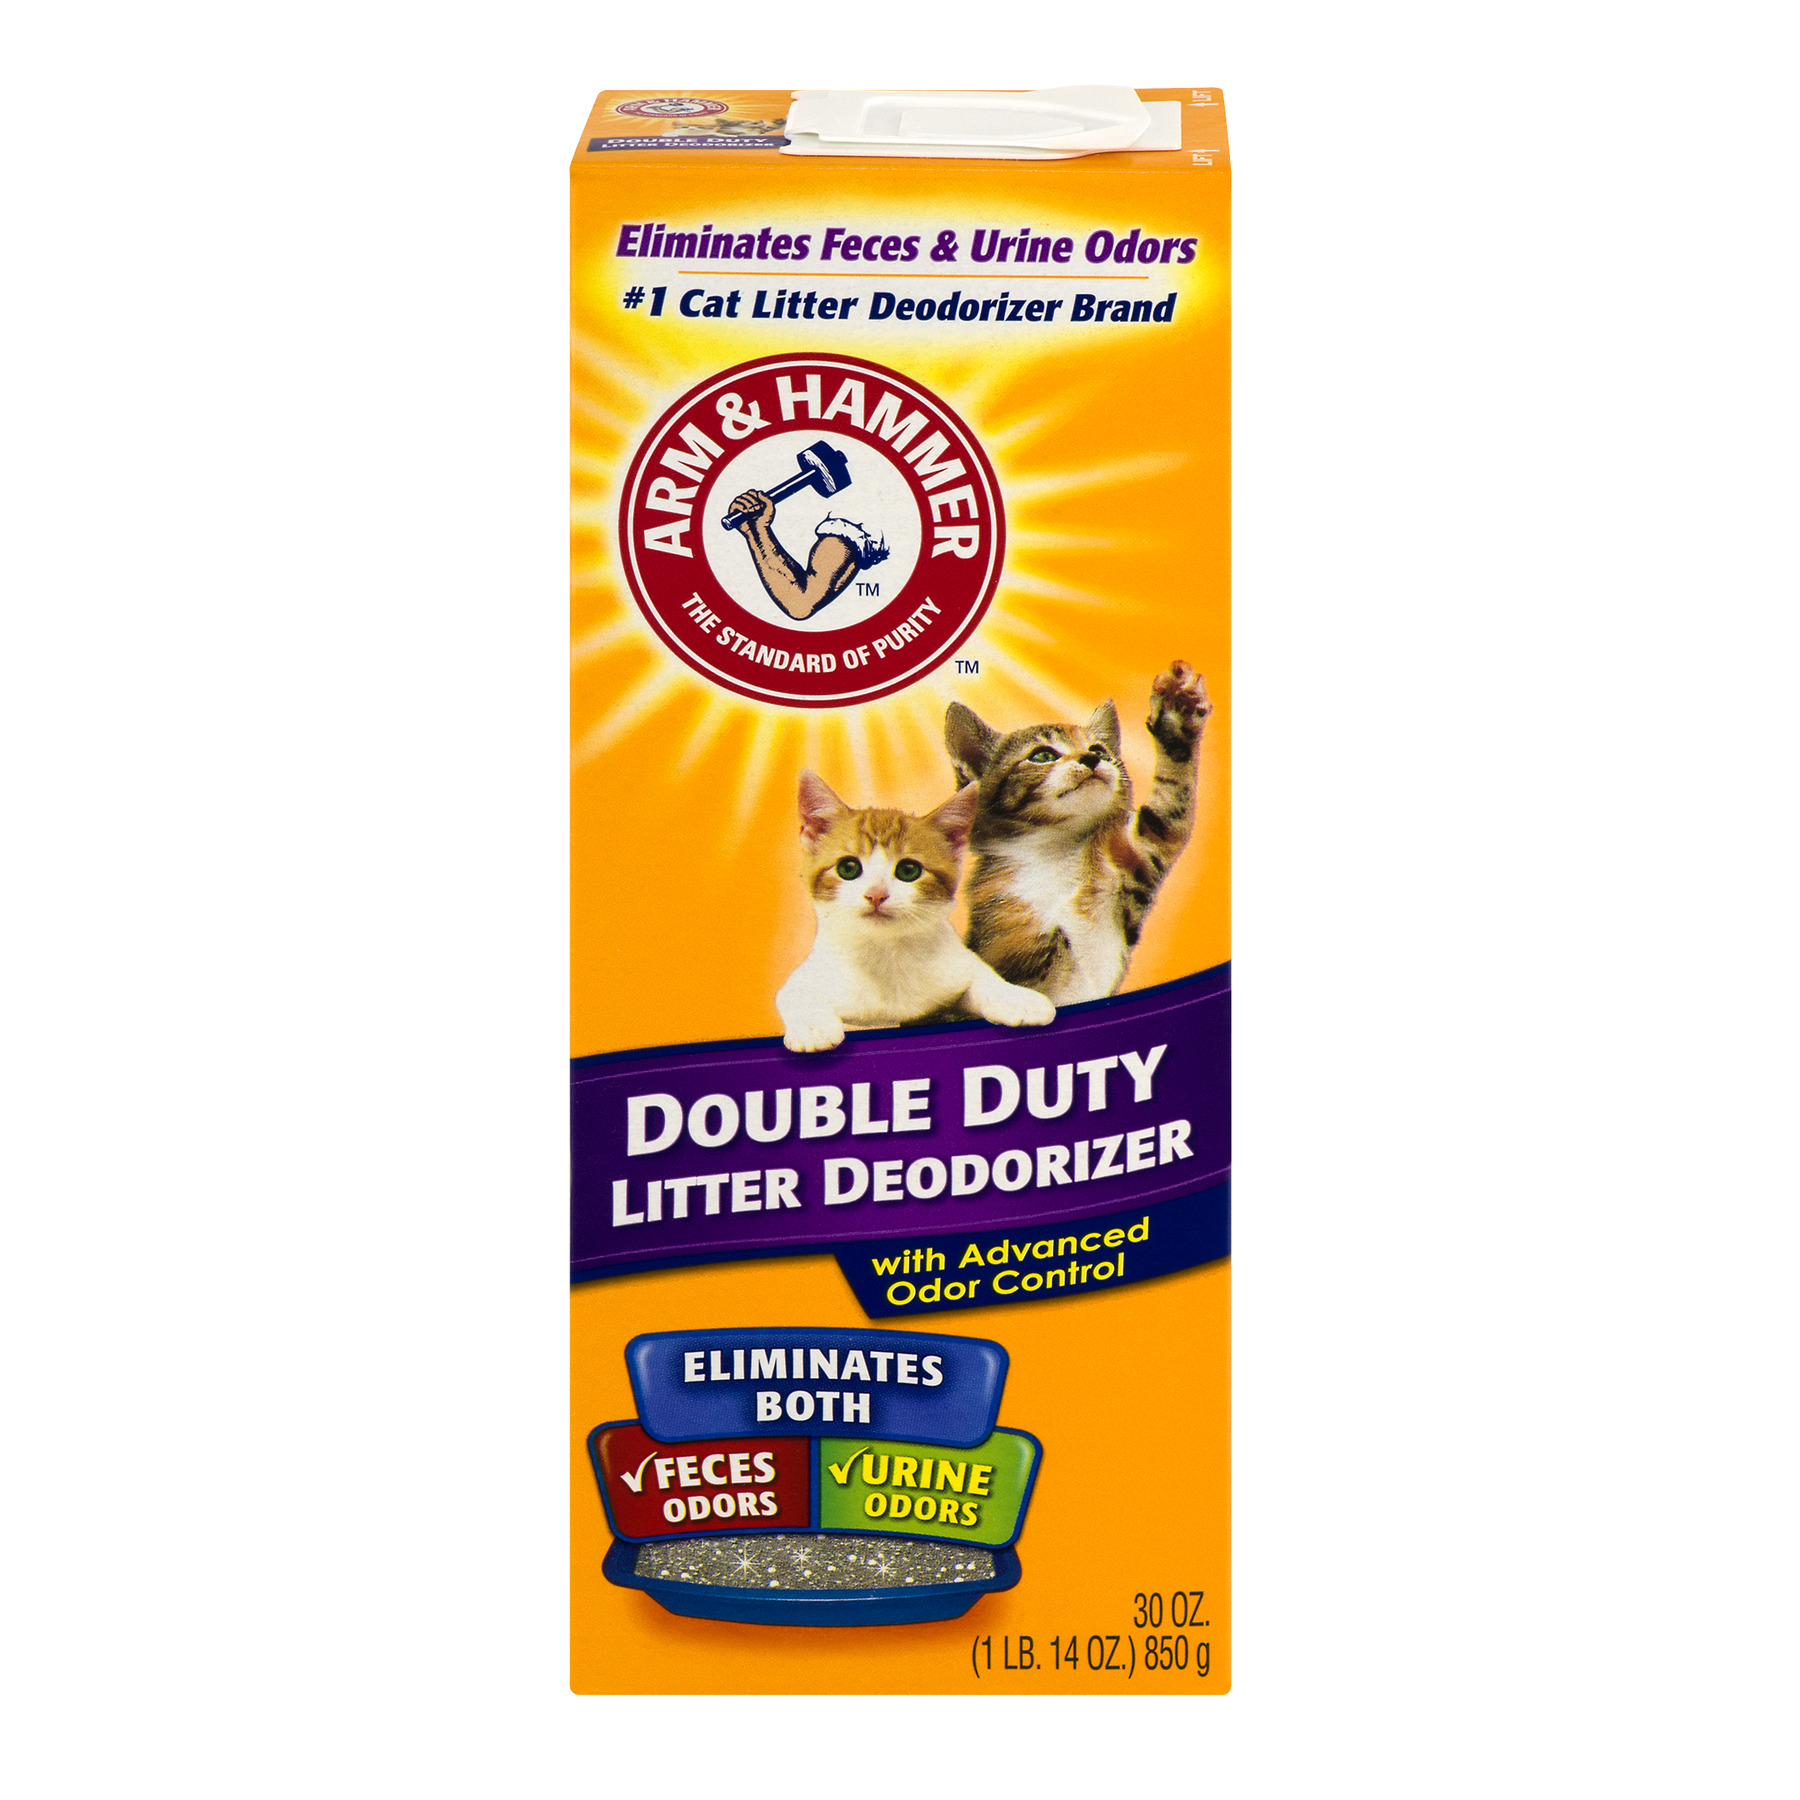 Arm & Hammer Double Duty Cat Litter Deodorizer With Advanced Odor Control, 30.0 Oz